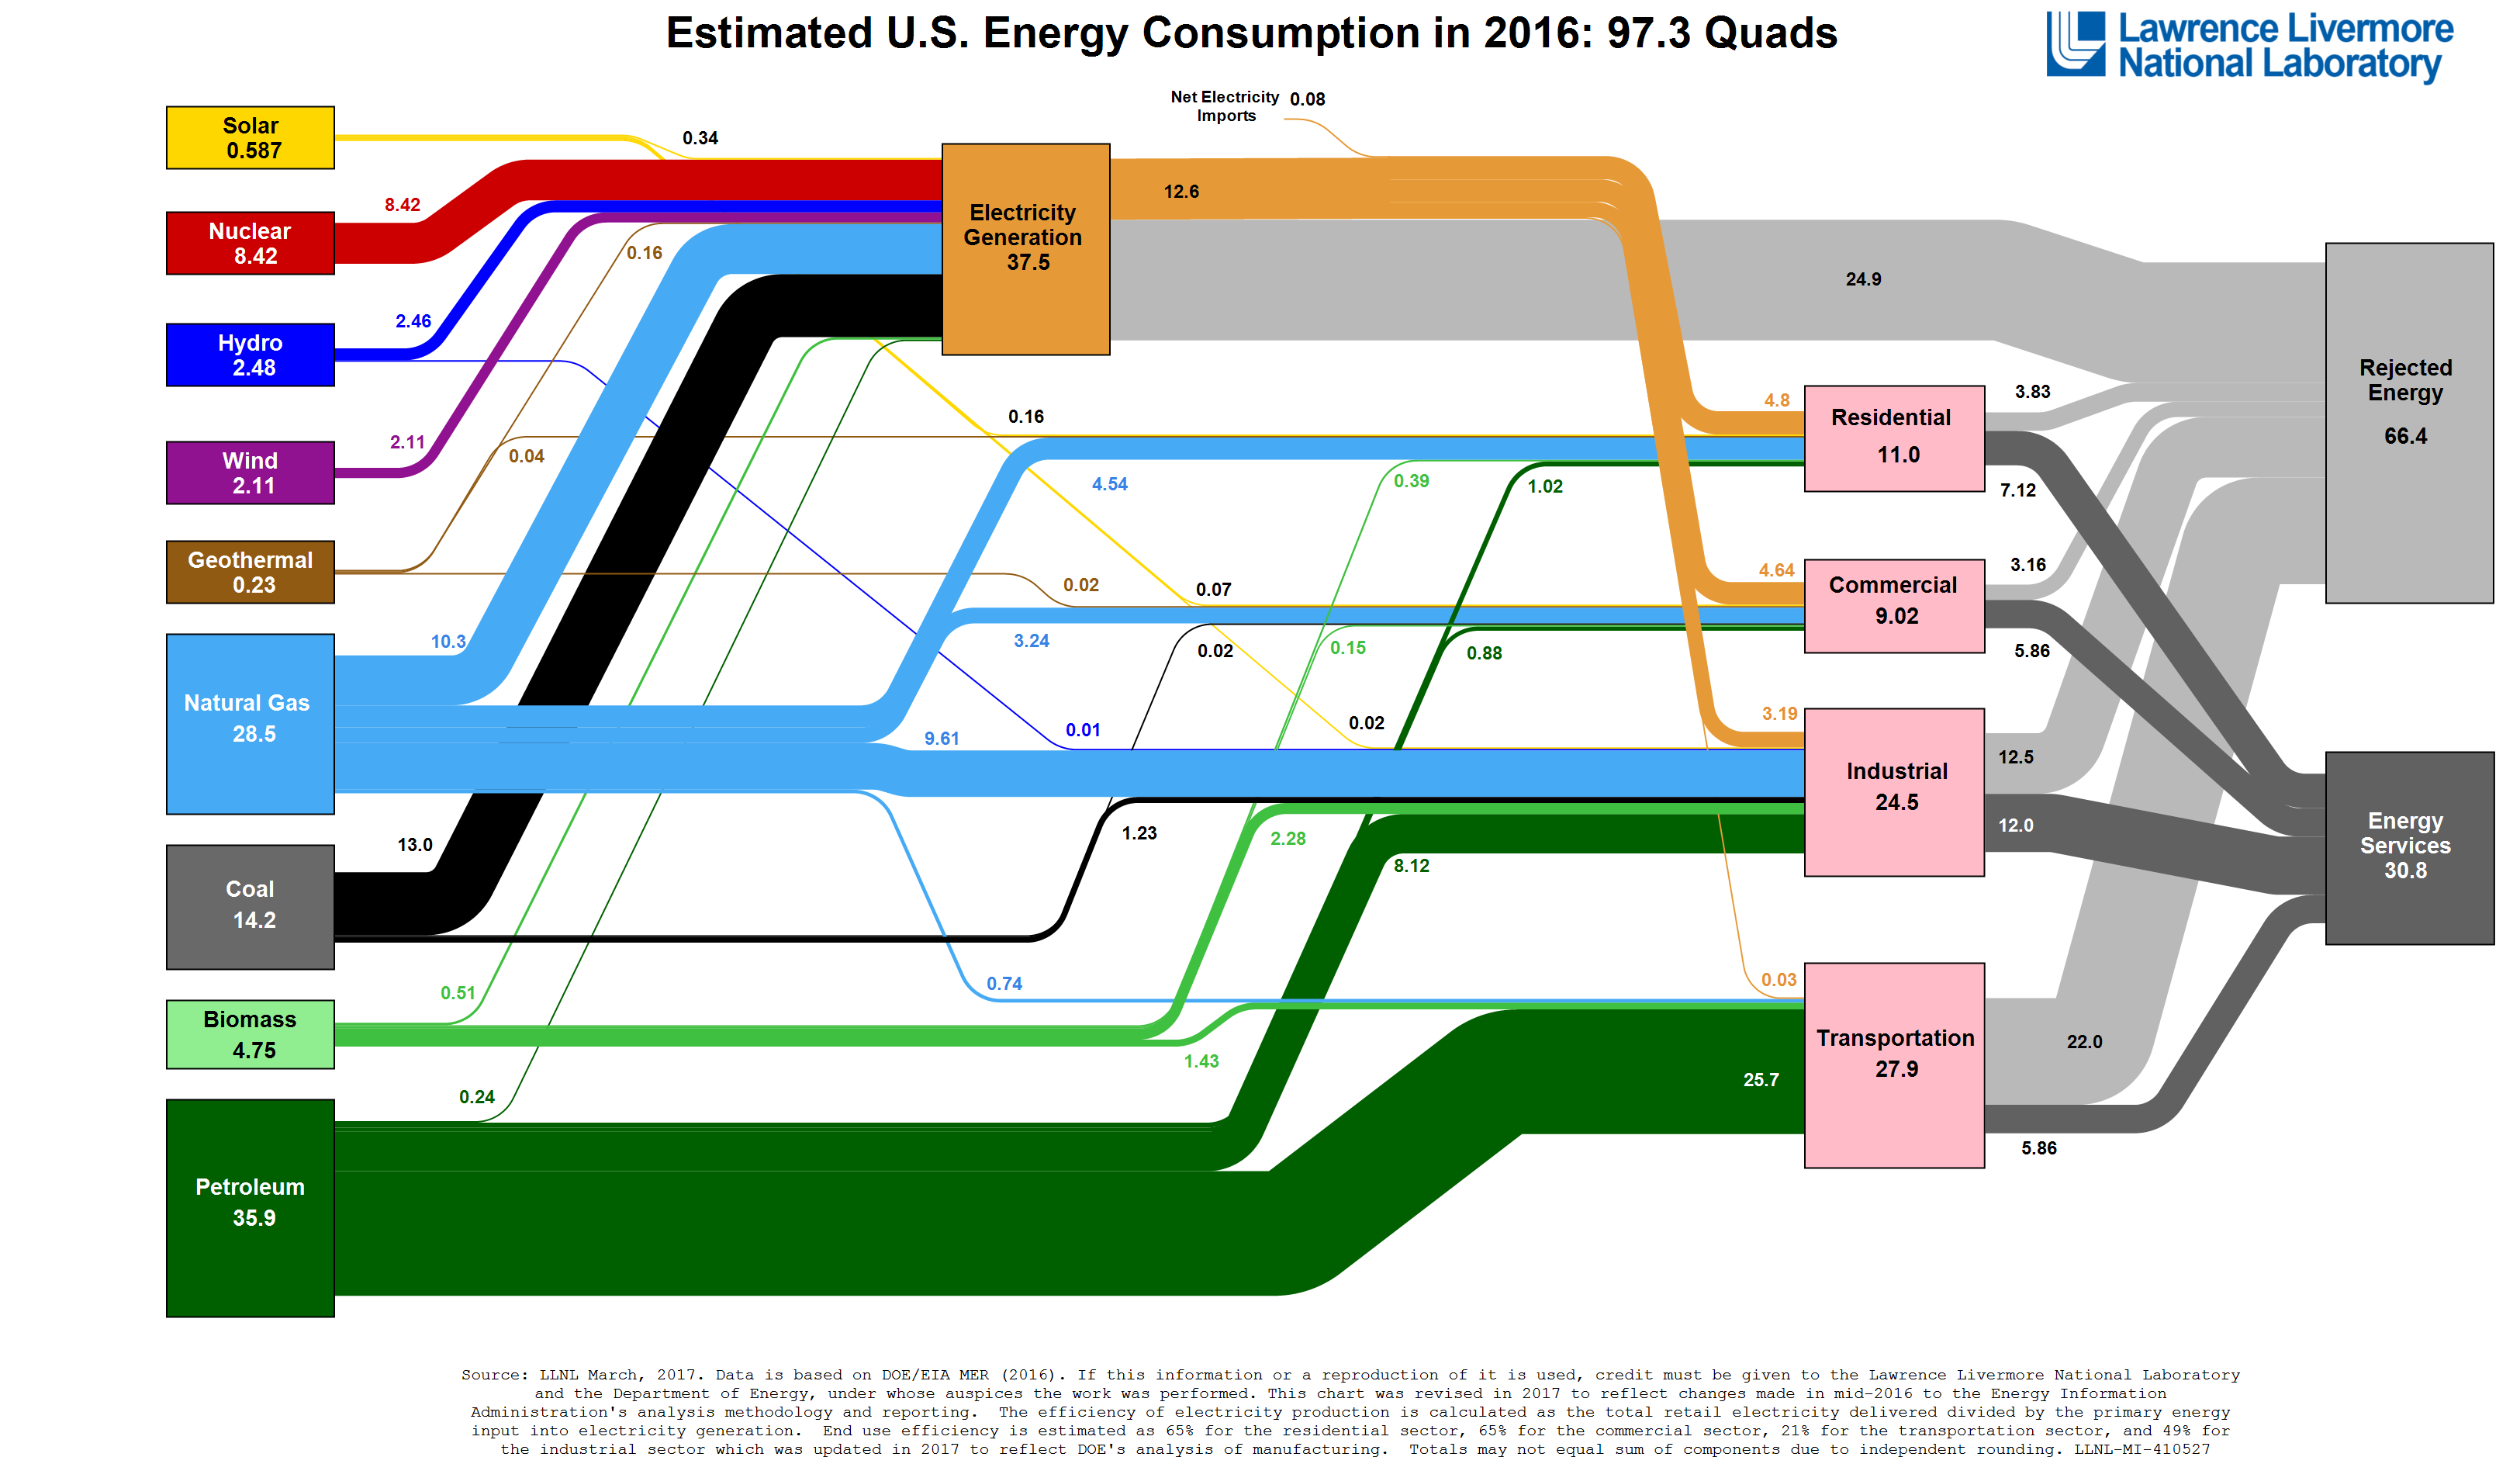 USA Energy Consumption, all forms, in Quads